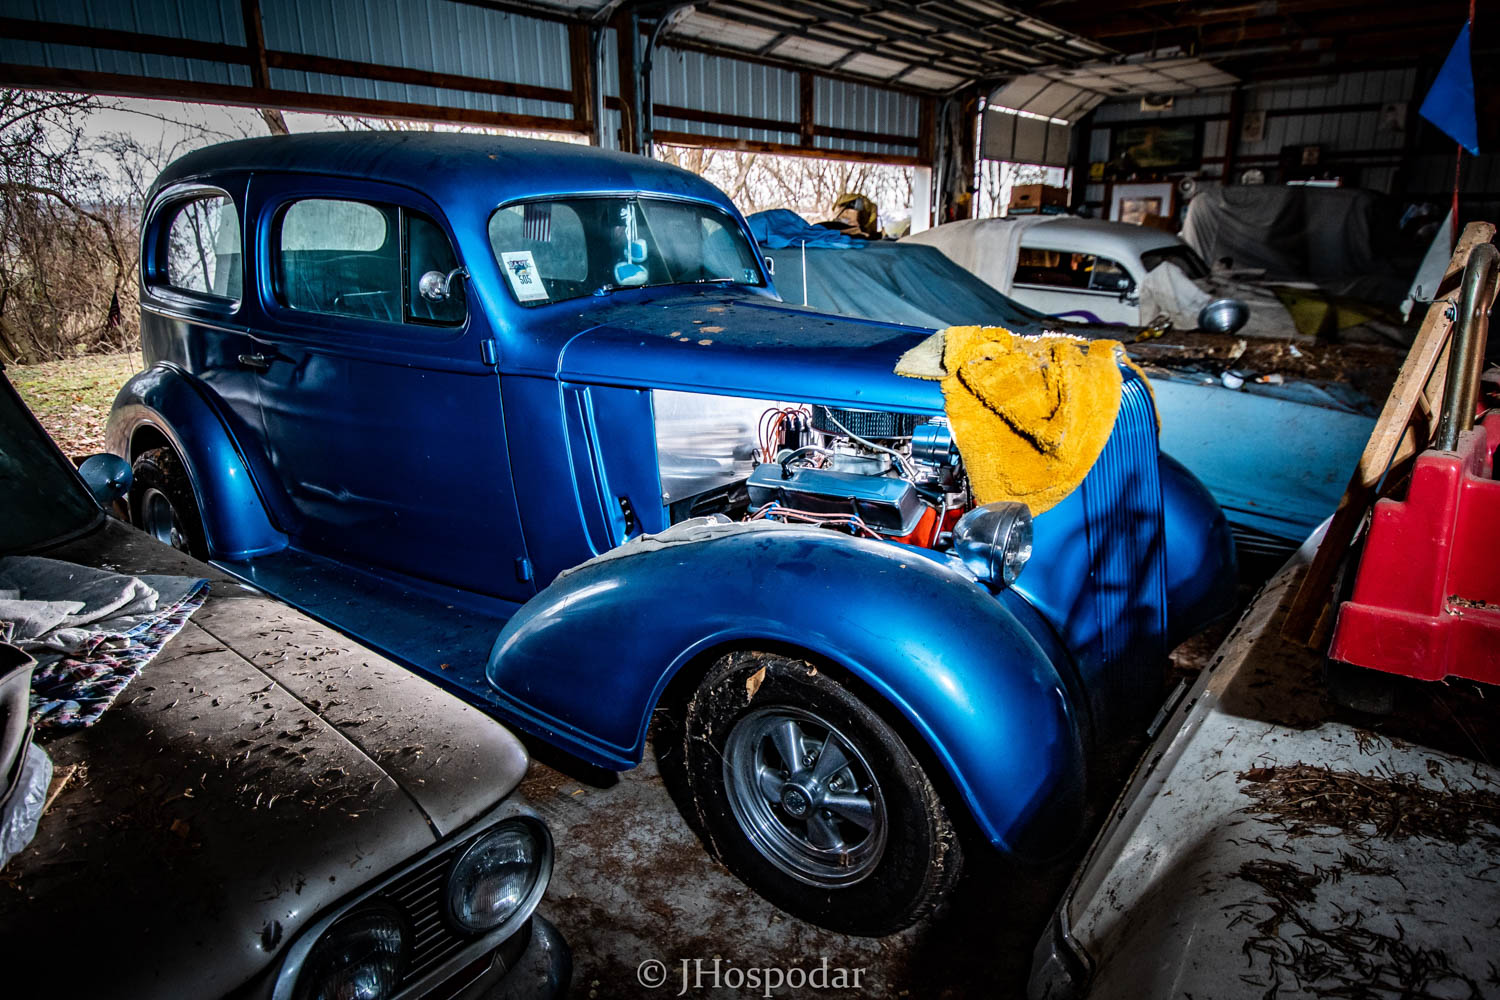 50 Car Barn Find In Pennsylvania Is A Dusty Gold Mine Of Detroit Iron Hagerty Media